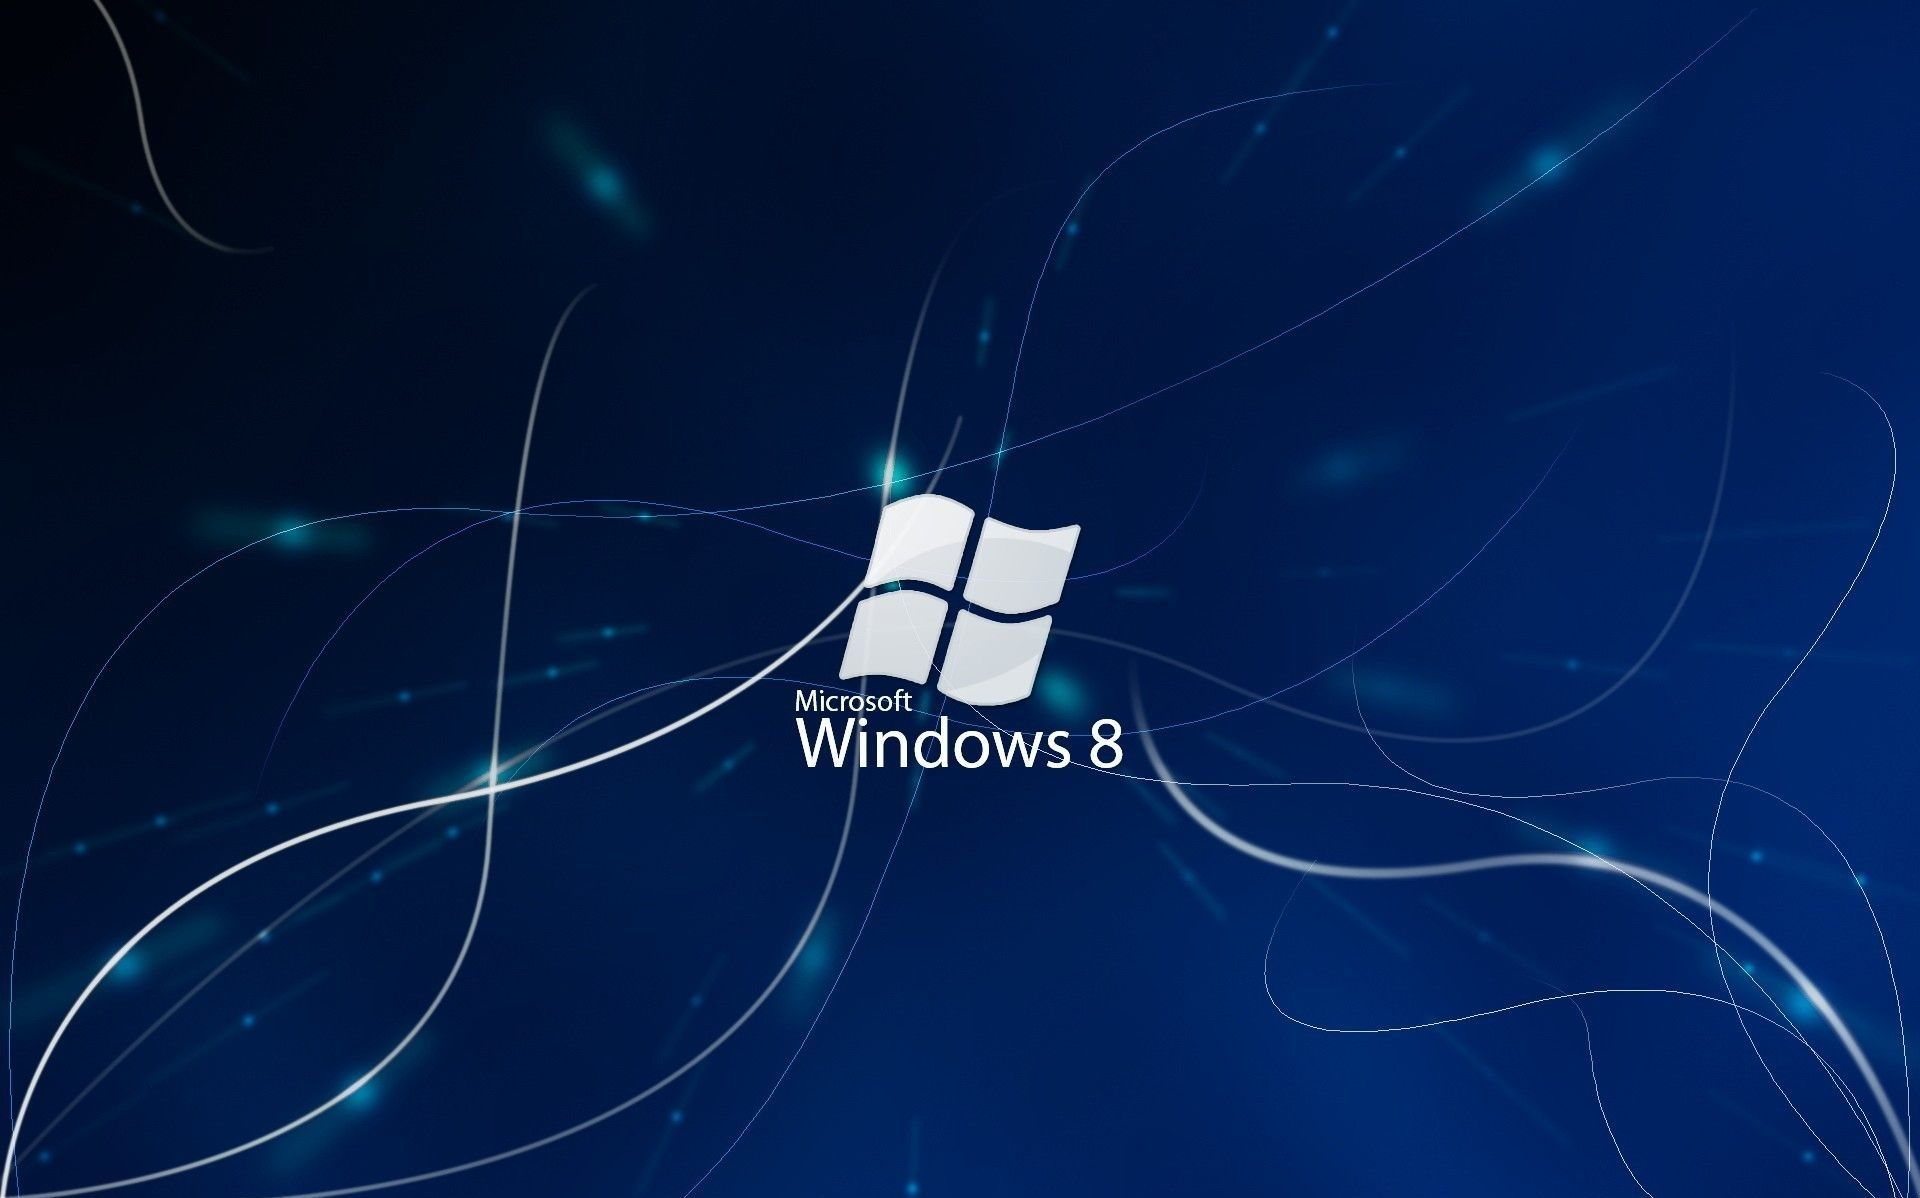 Windows 8 Wallpapers Hd 1080p Posted By Ethan Anderson